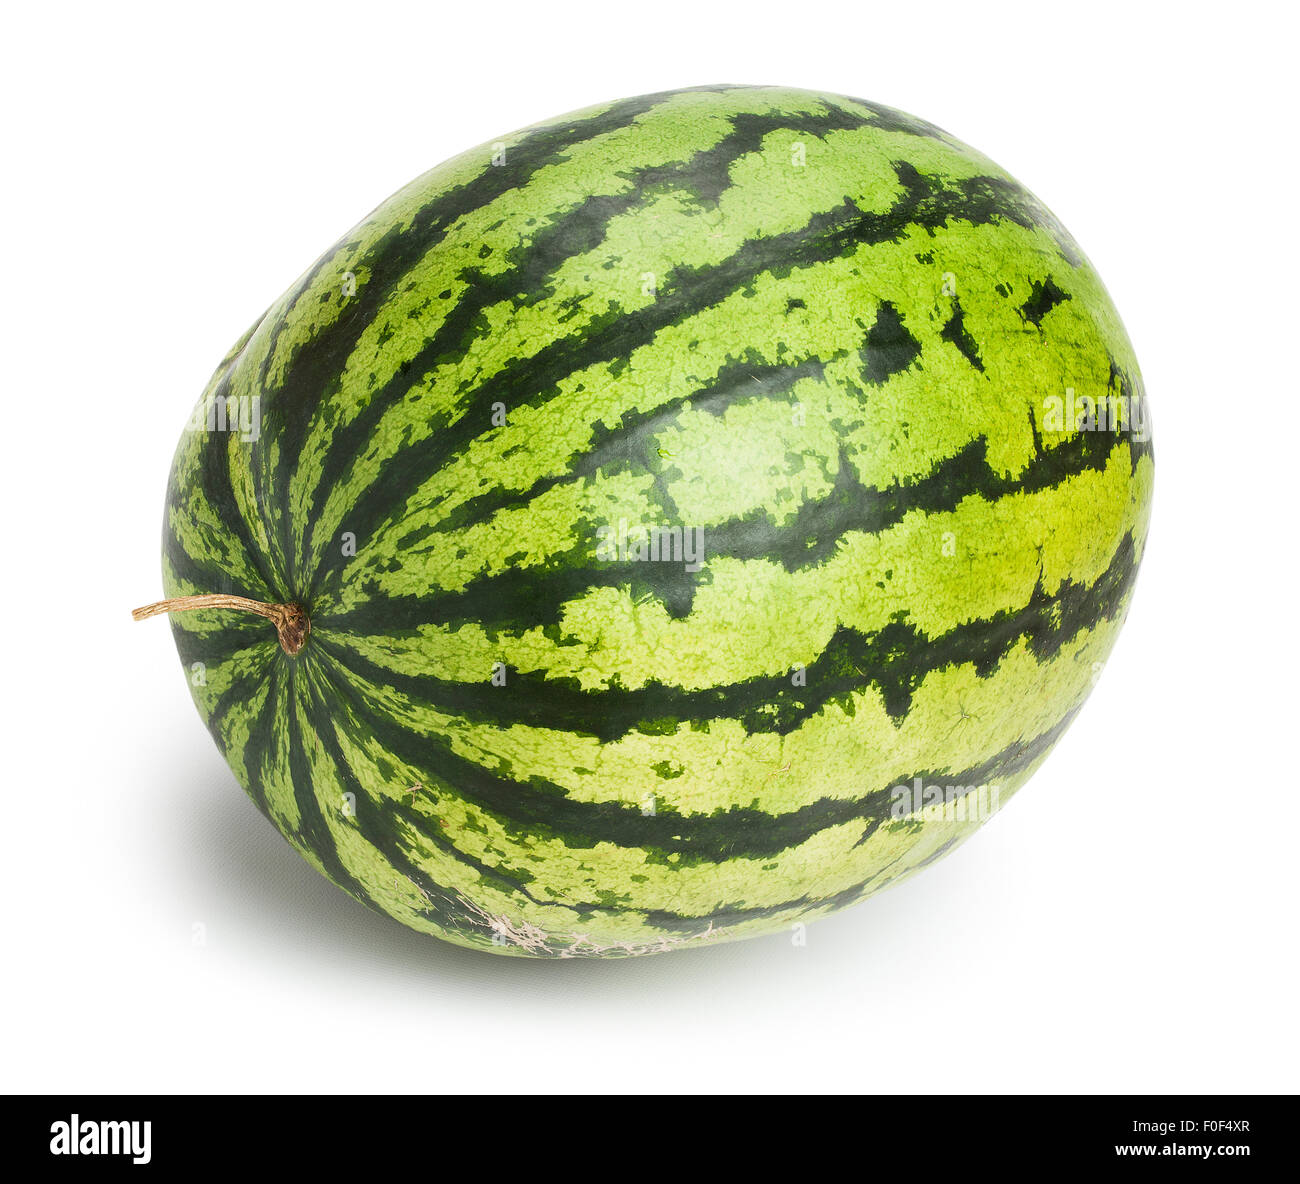 watermelon isolated - Stock Image